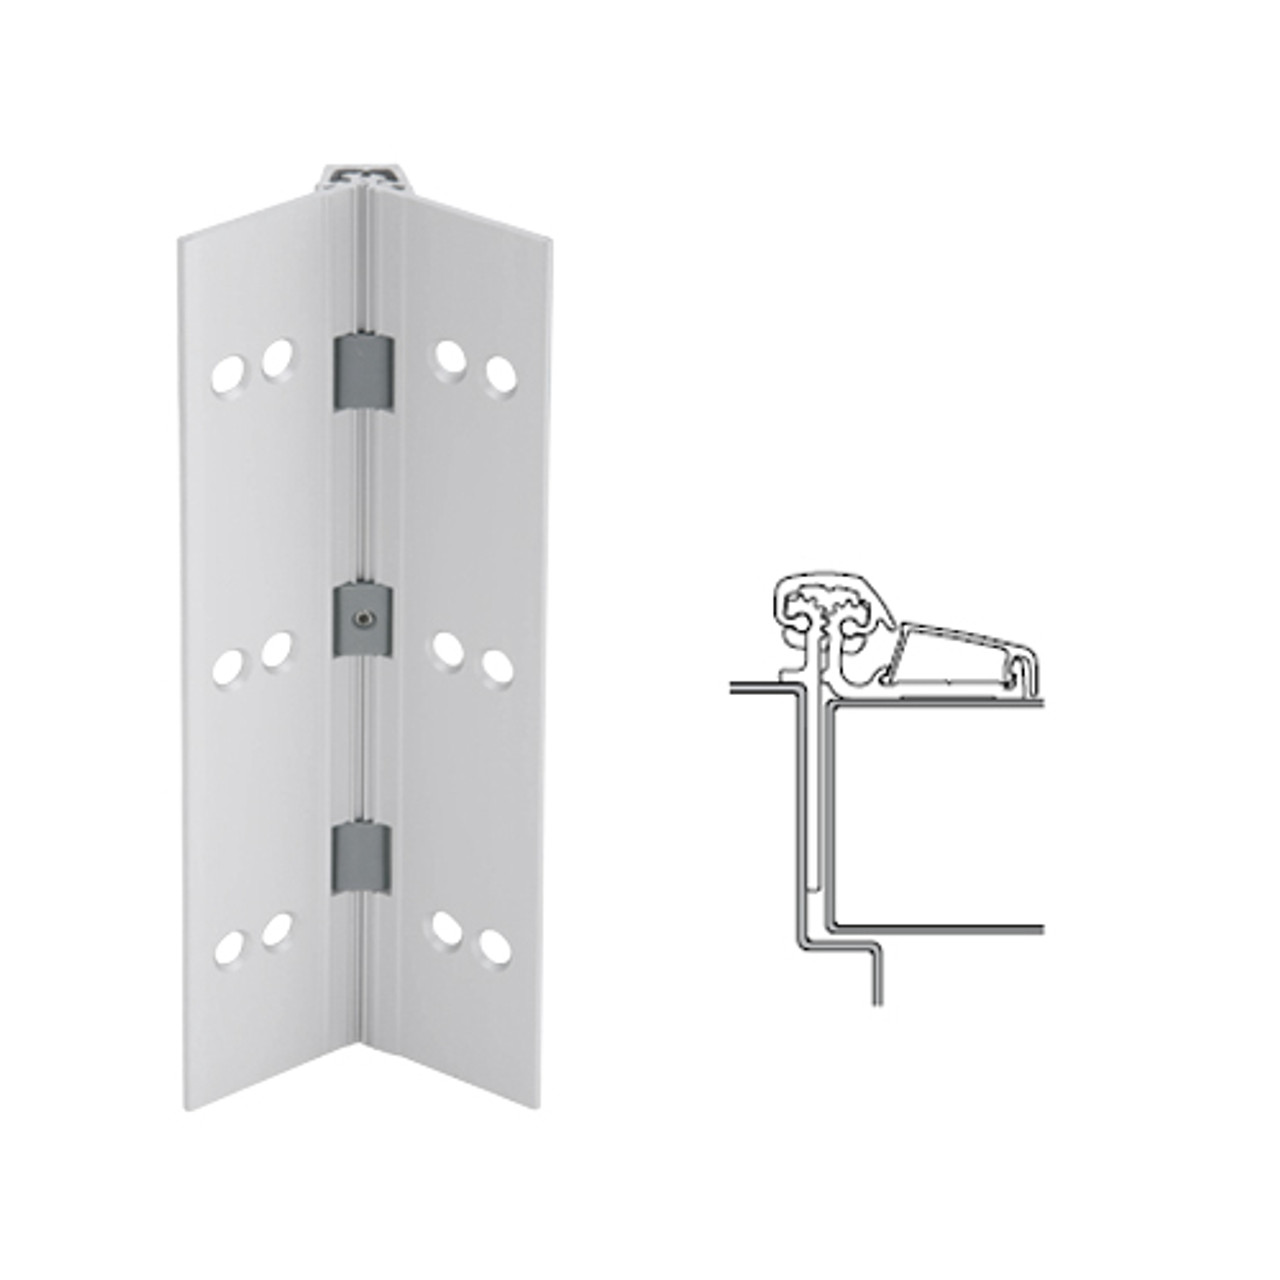 053XY-US28-95-WD IVES Adjustable Half Surface Continuous Geared Hinges with Wood Screws in Satin Aluminum